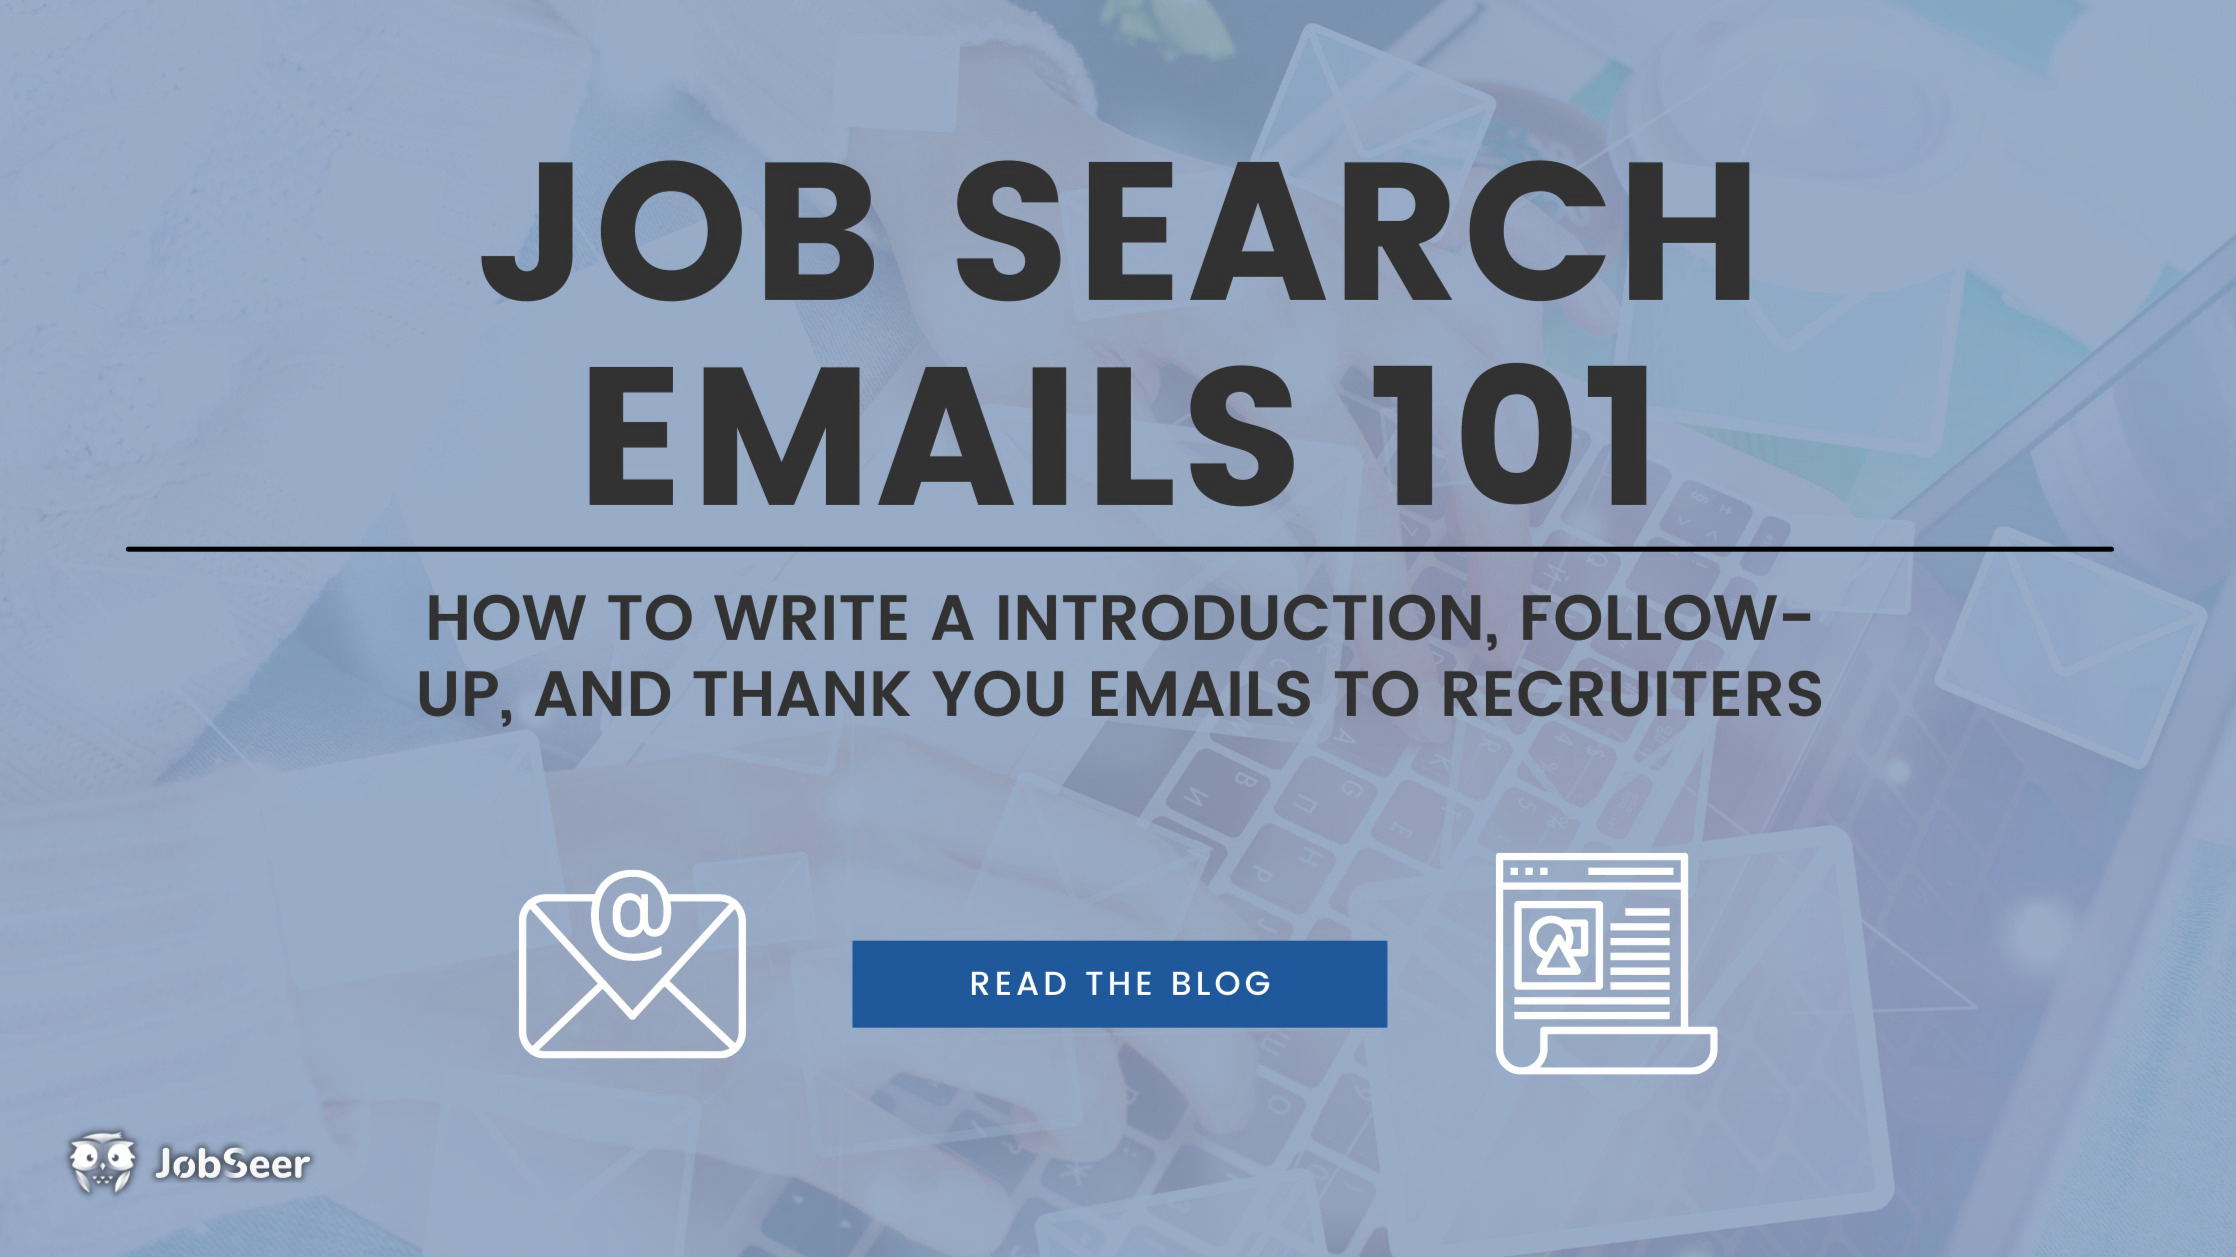 how-to-write-a-introduction-thank-you-follow-up-emails-to-recruiters-with-email-templates